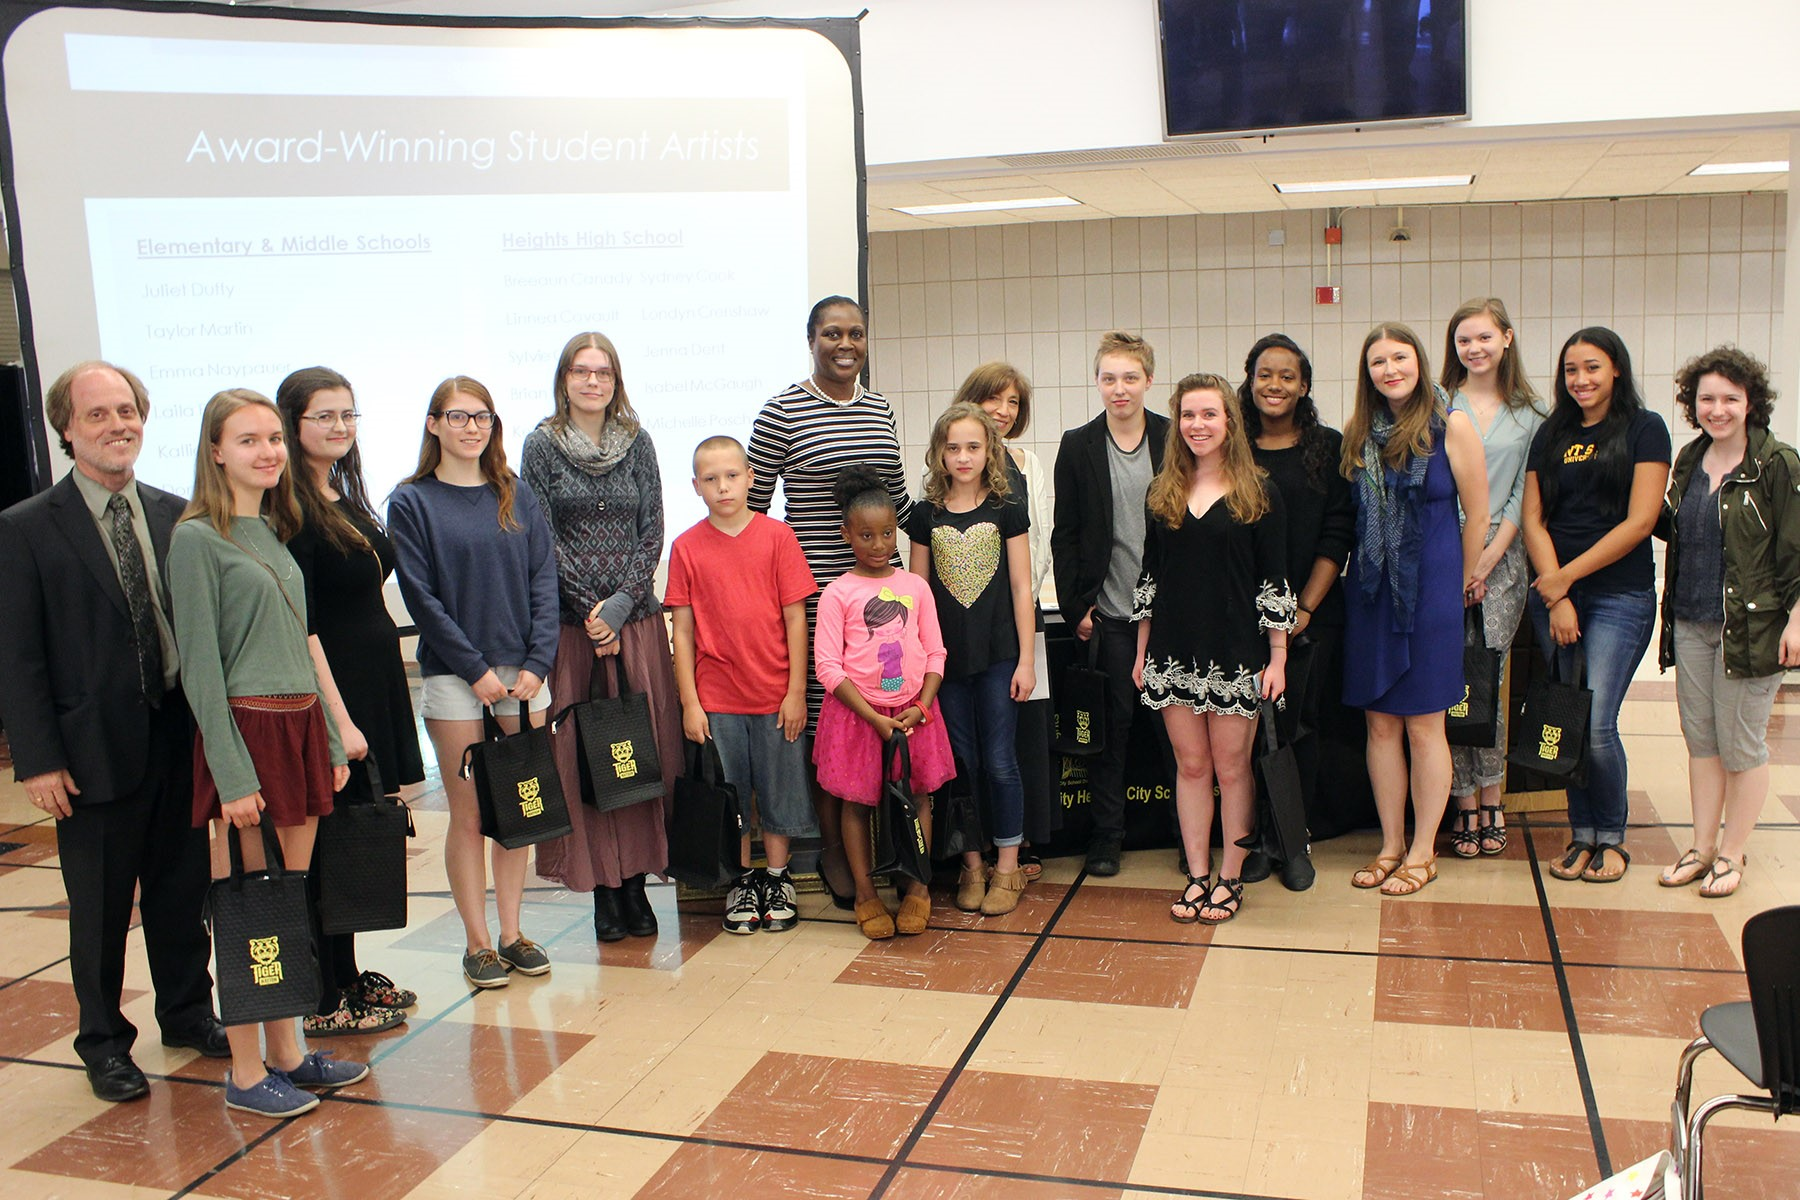 Award-winning student artists were recognized at the Board meeting.